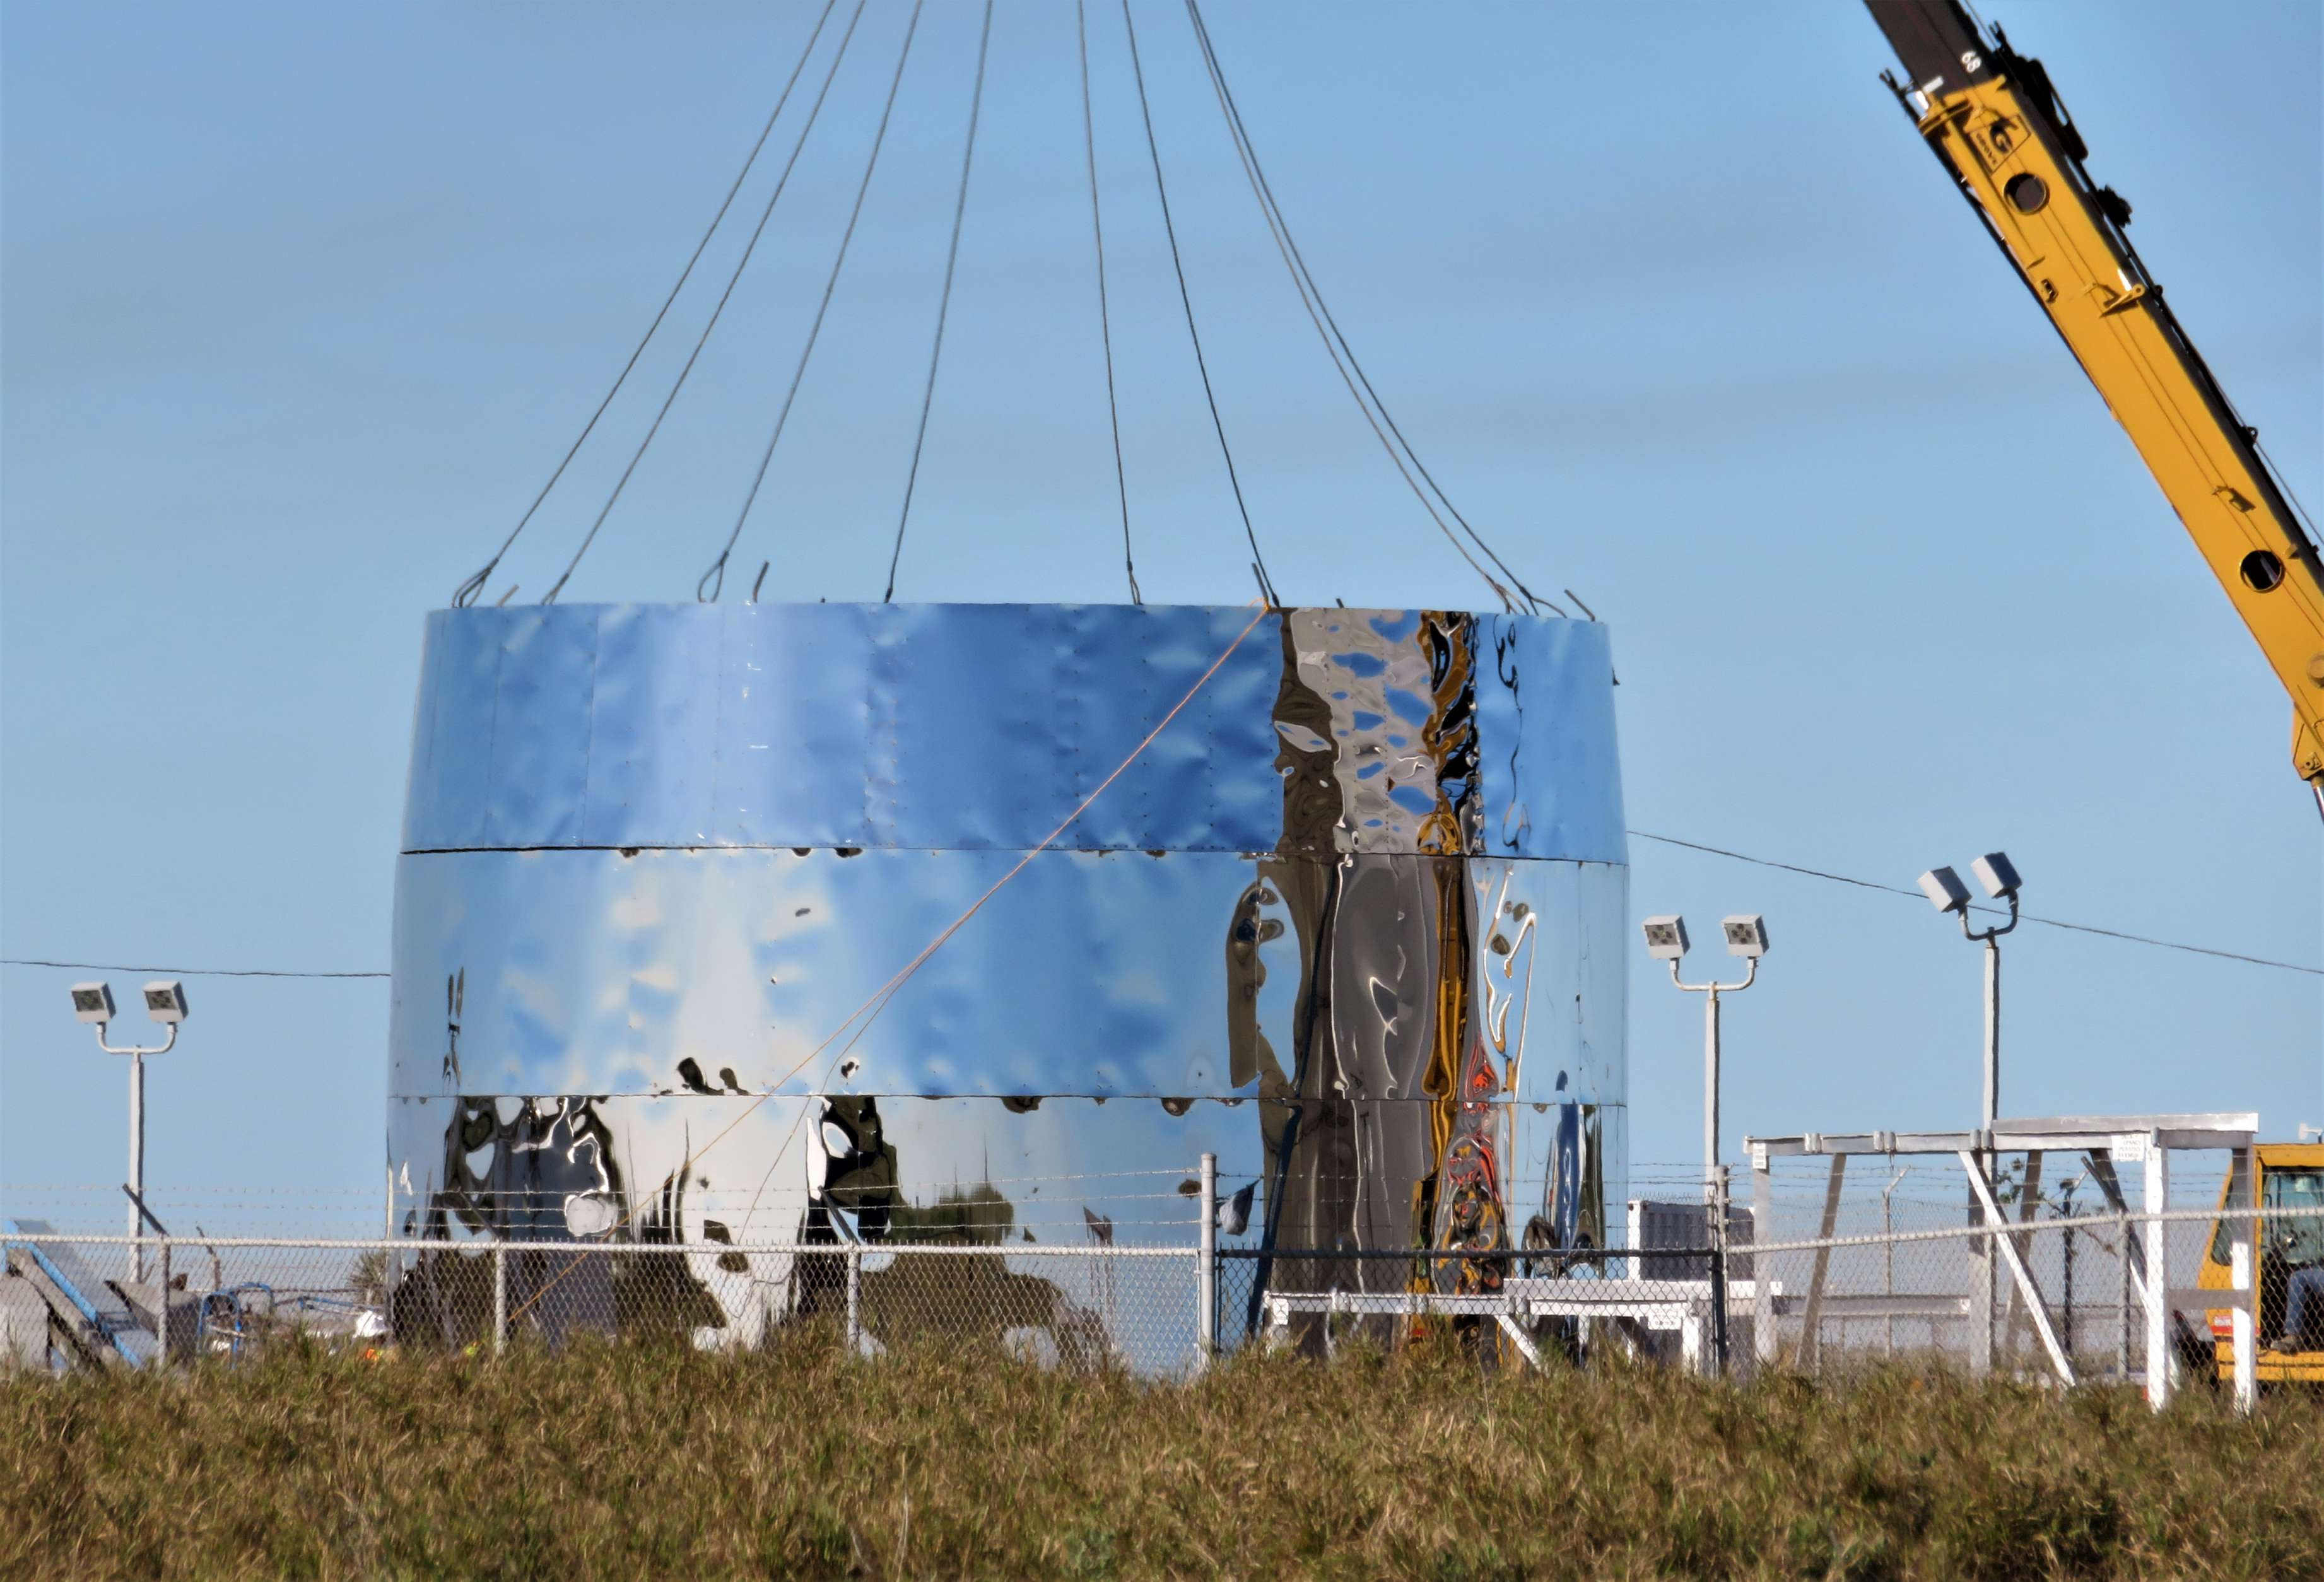 Starship hopper construction (bocachicagal – NASASpaceflight) 7(c)